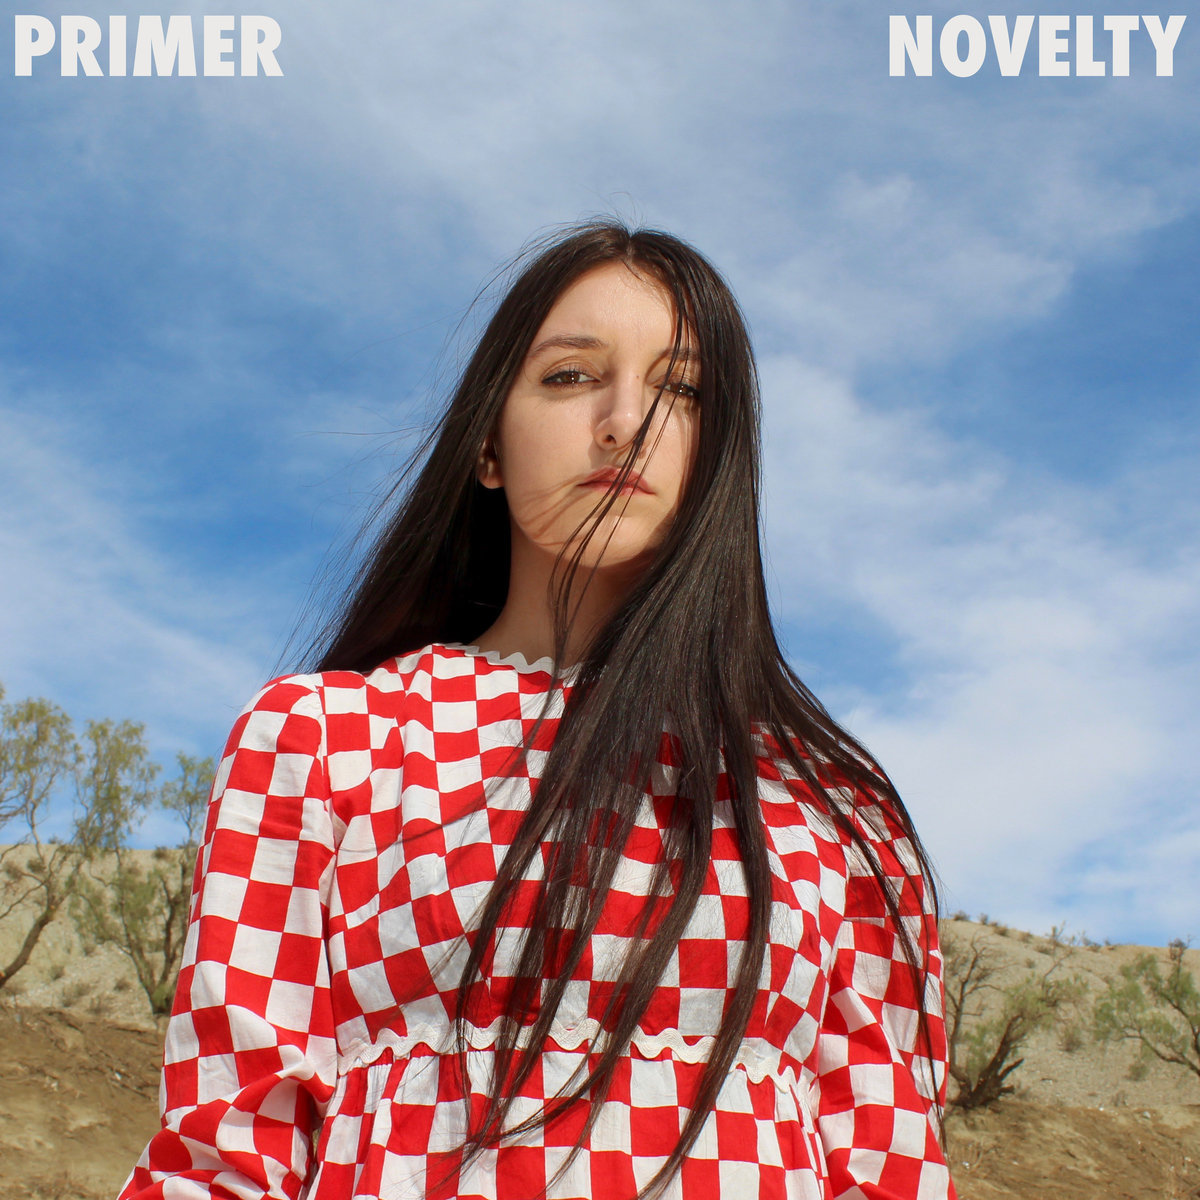 Primer Novelty Cover.jpg